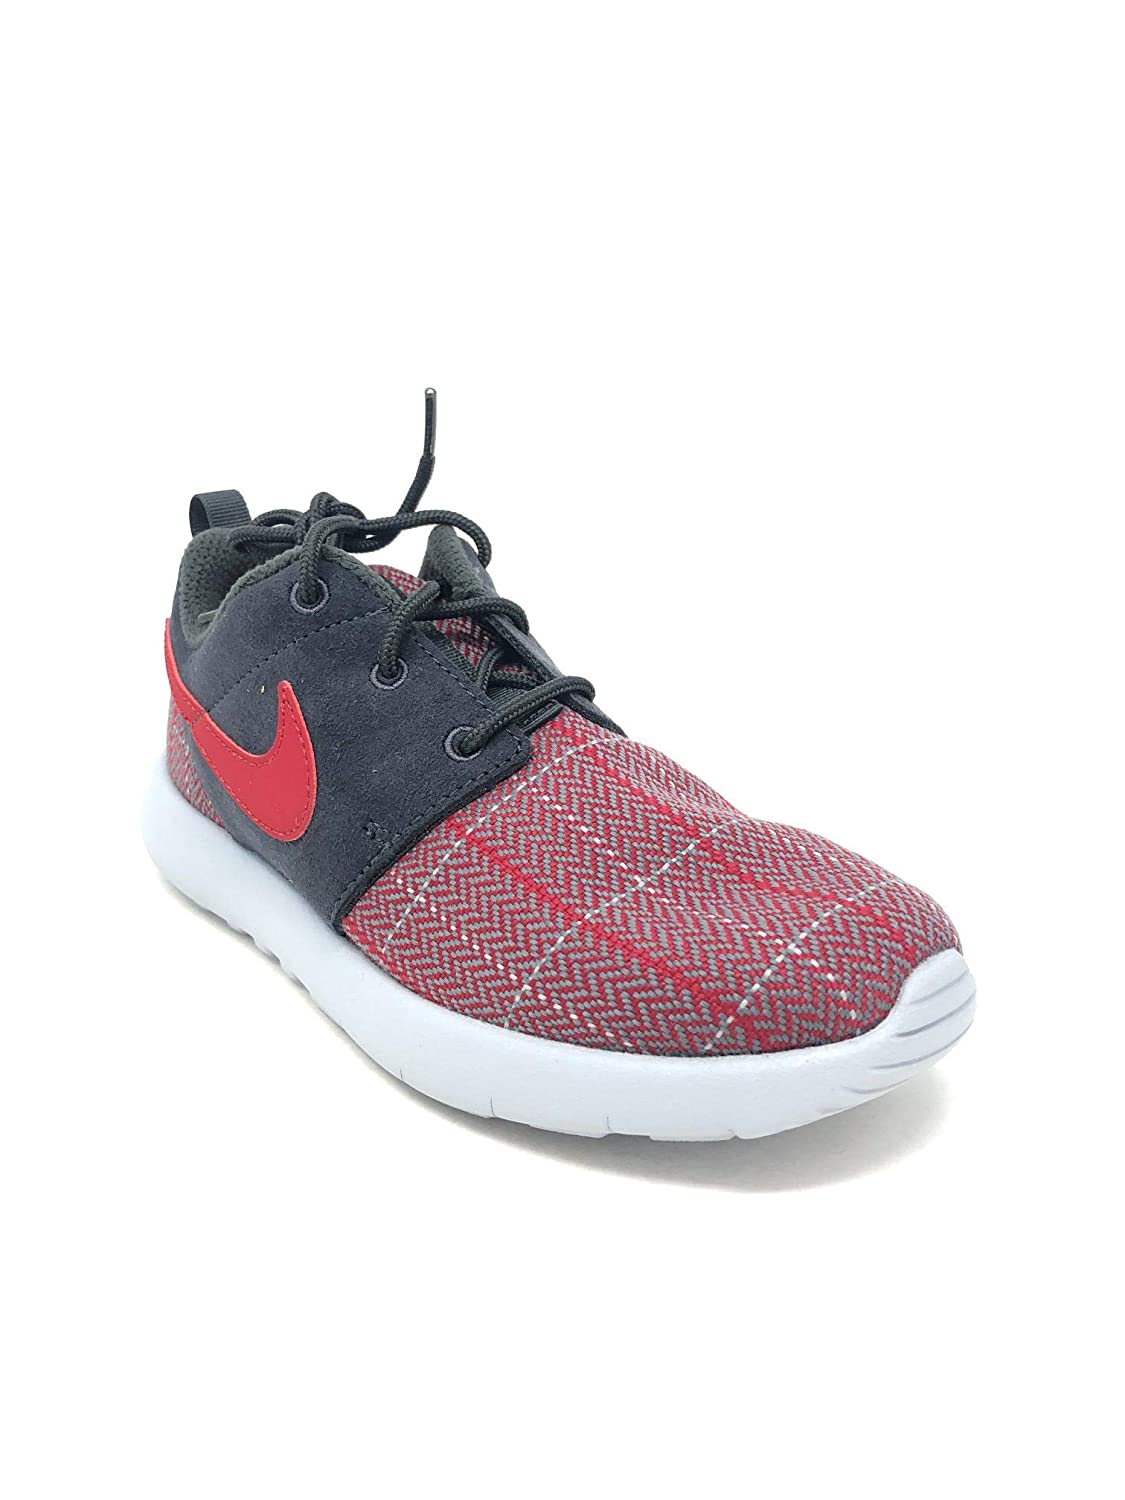 Size 3Y PS Anthracite//Gym-Gym Red-Wolf Grey Nike Roshe One SE